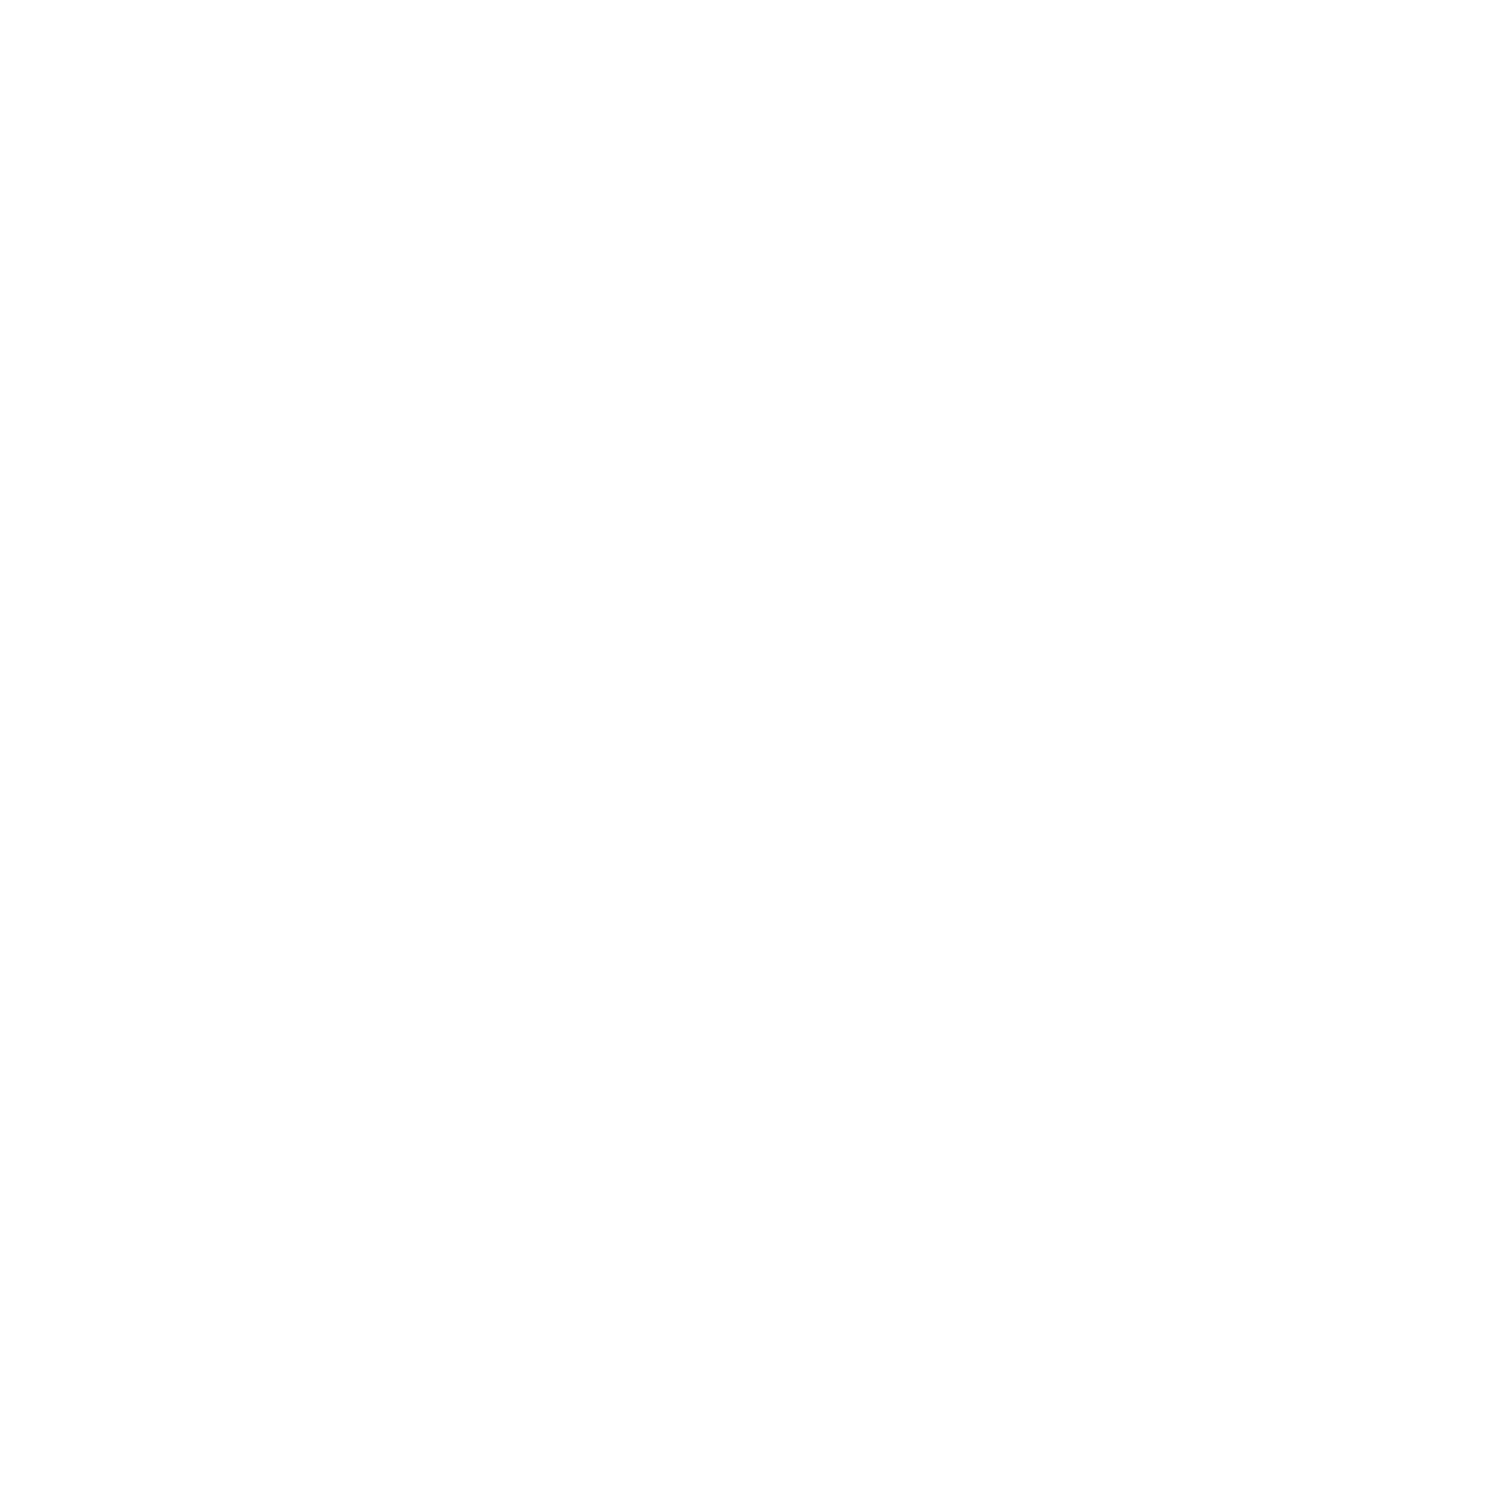 Turner Pool Services logo